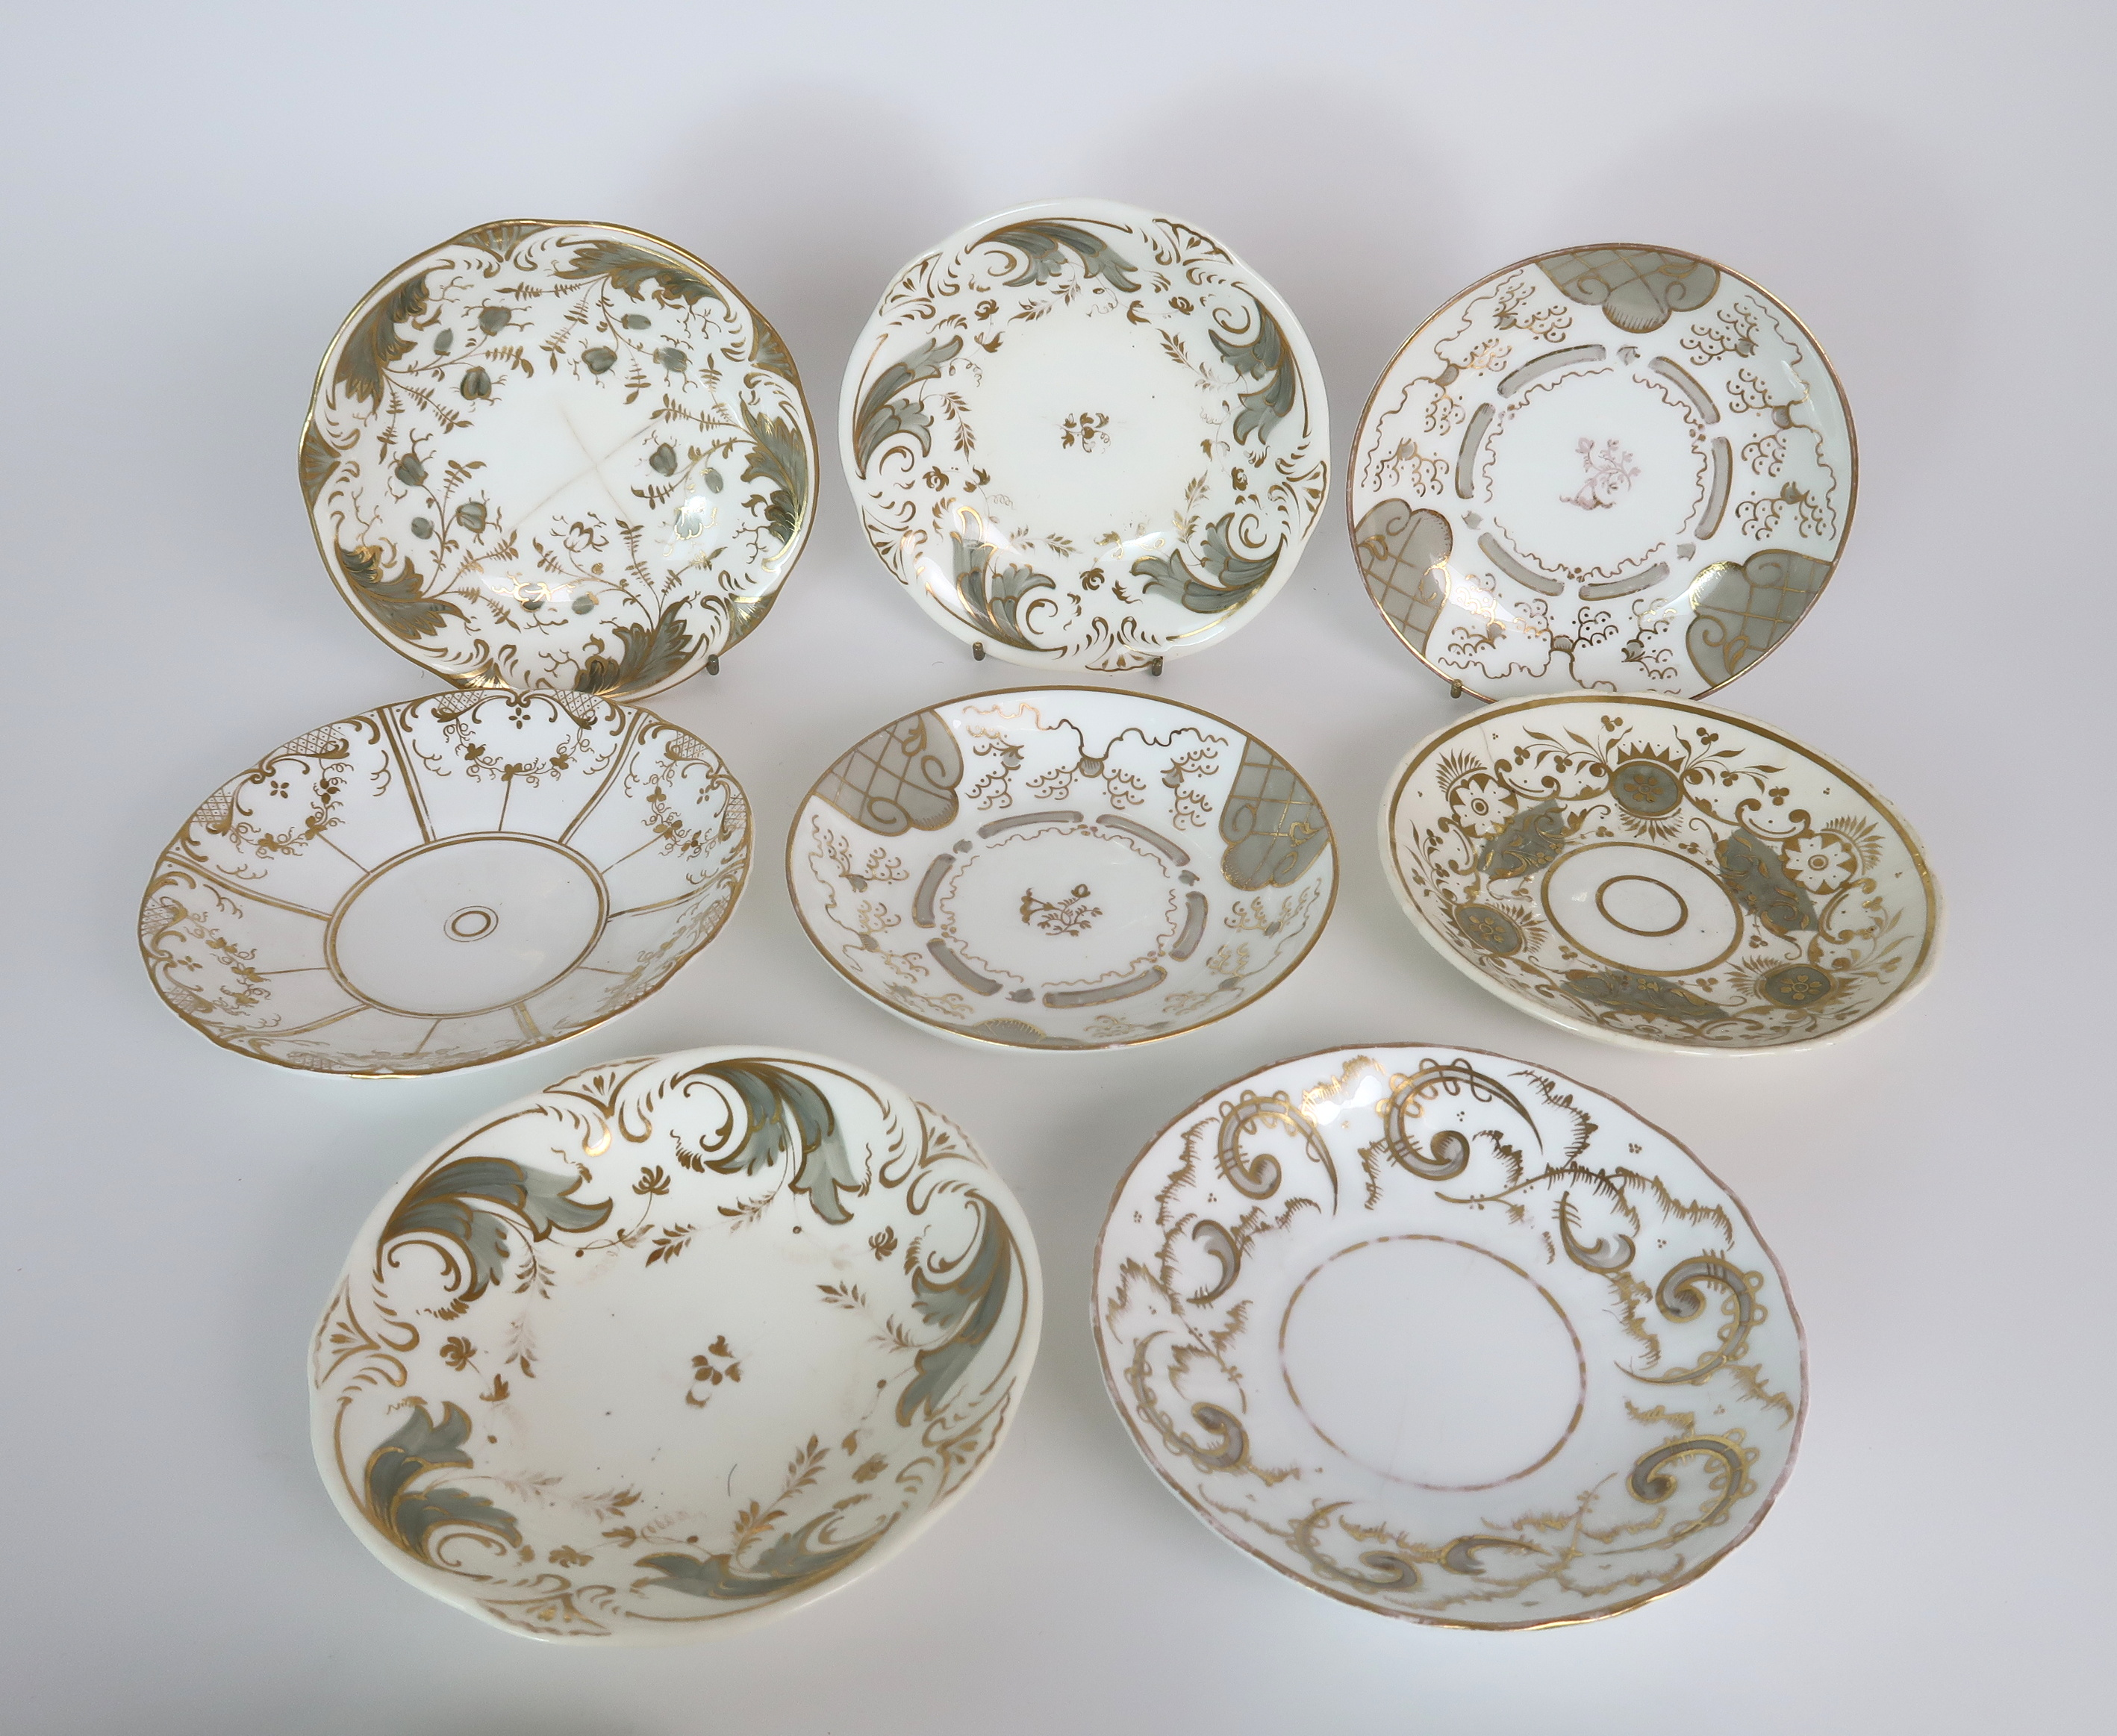 A COLLECTION OF 19TH CENTURY ENGLISH TEA AND COFFEE WARES the white ground with either grey and gilt - Image 2 of 22